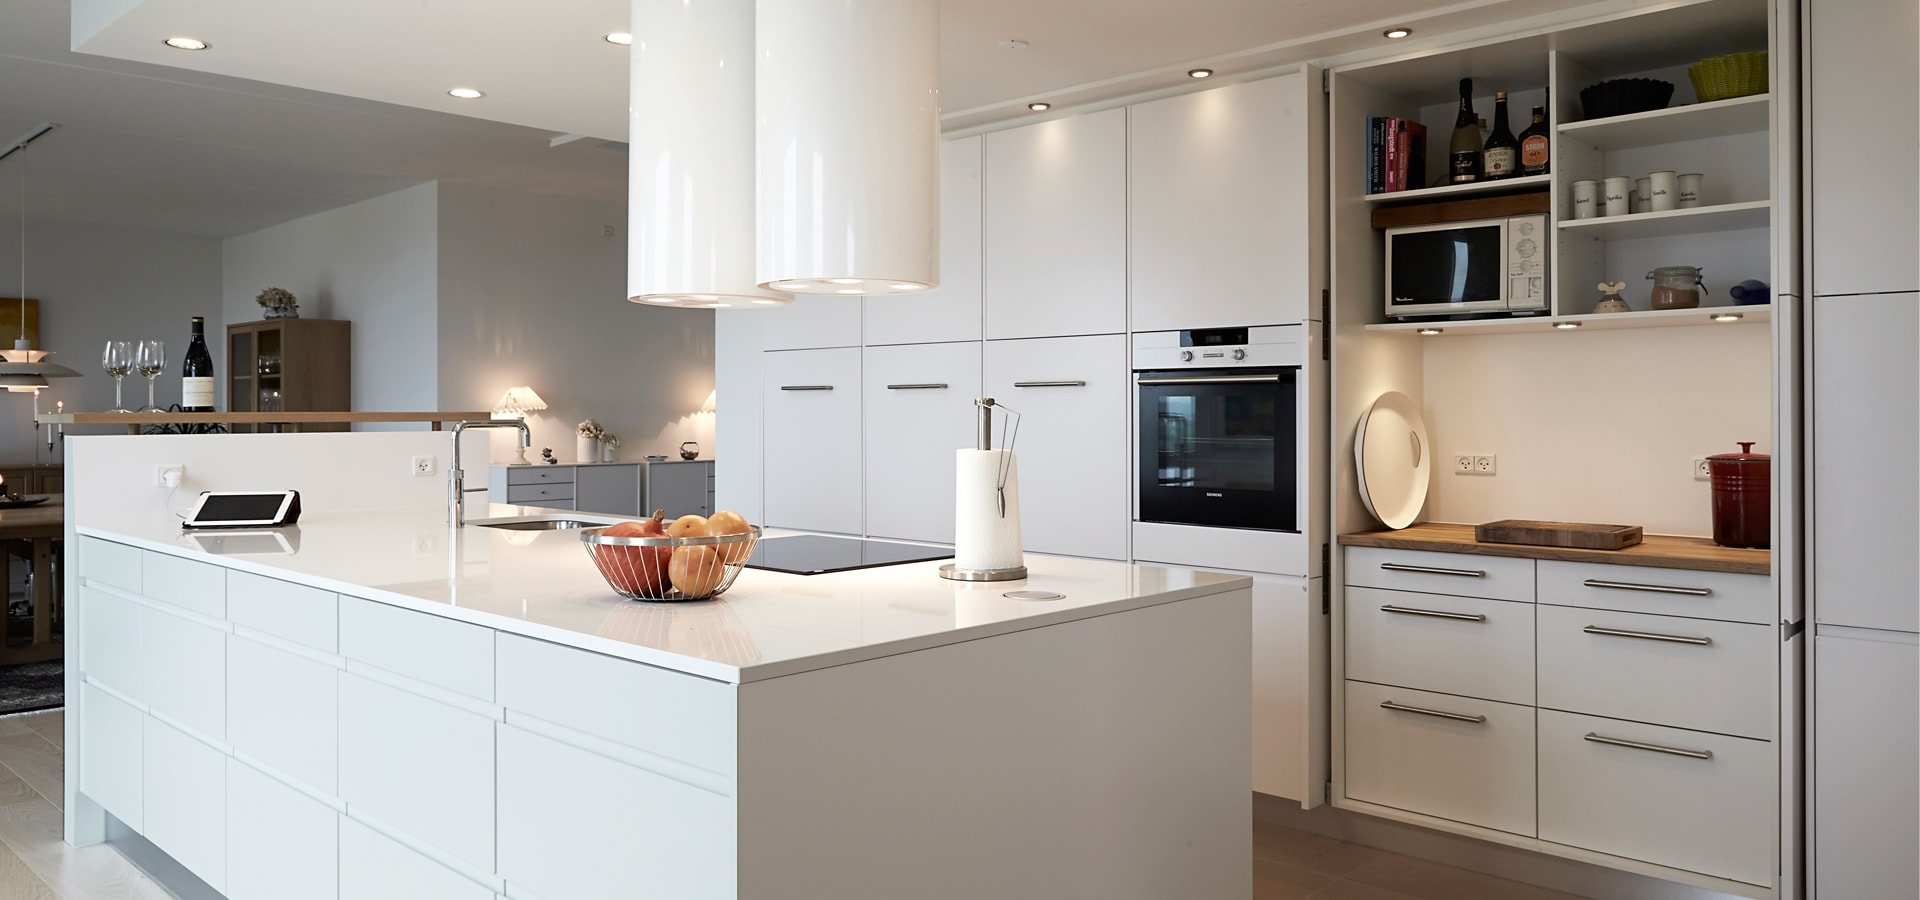 Major Factors For Kitchen Cabinets Considered